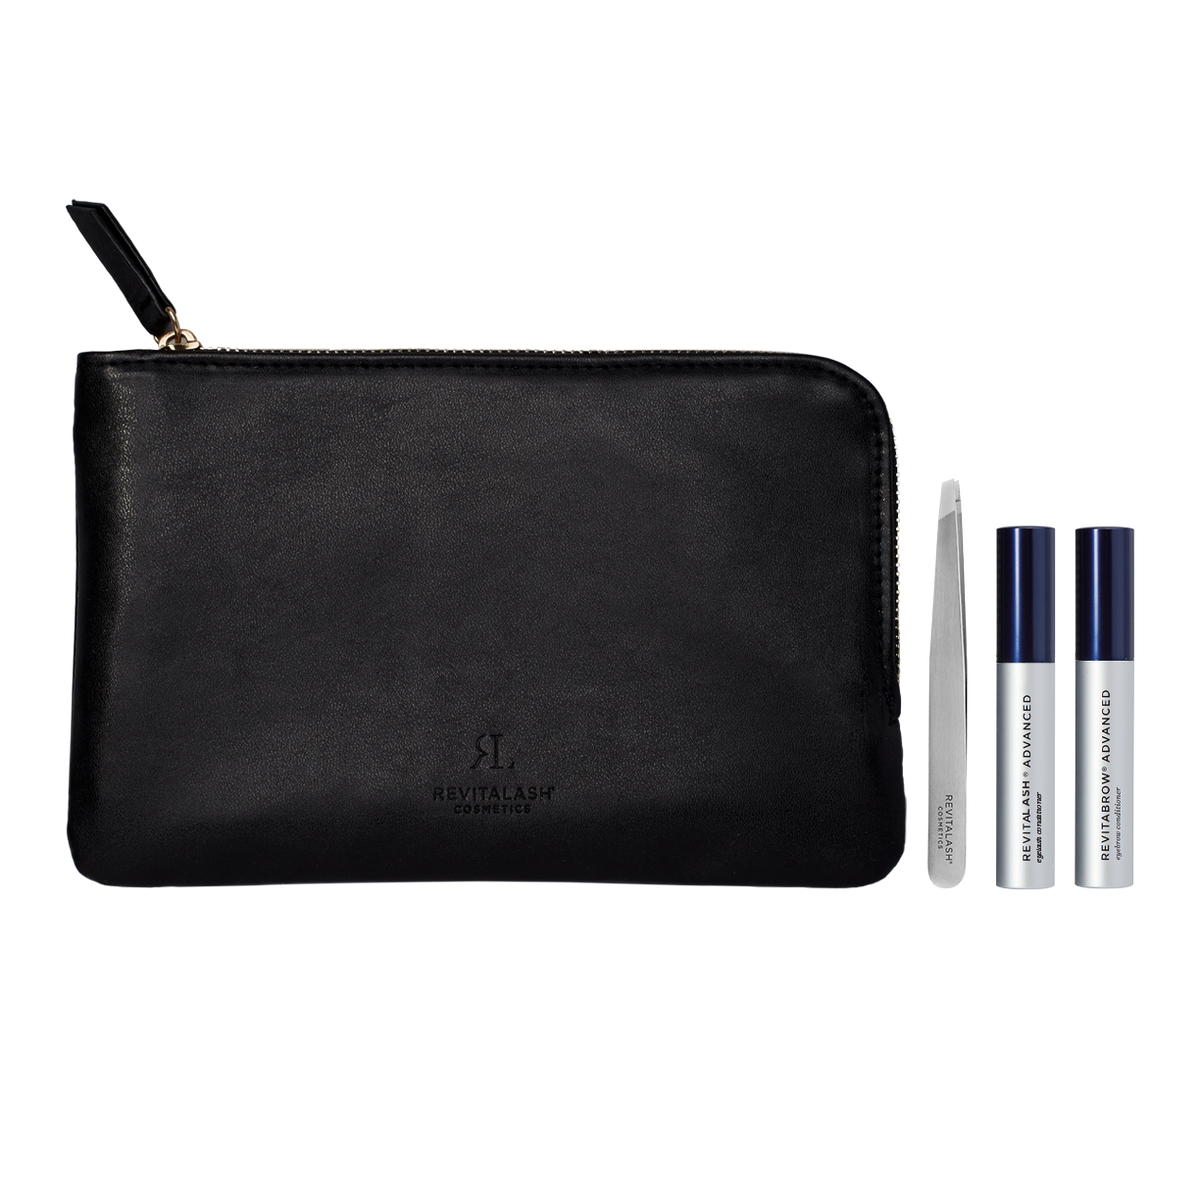 Image of Lash and Brow Trial Kit which includes a black vegan leather cosmetic bag, RevitaLash Advanced, RevitaBrow Advanced, and precision tweezers